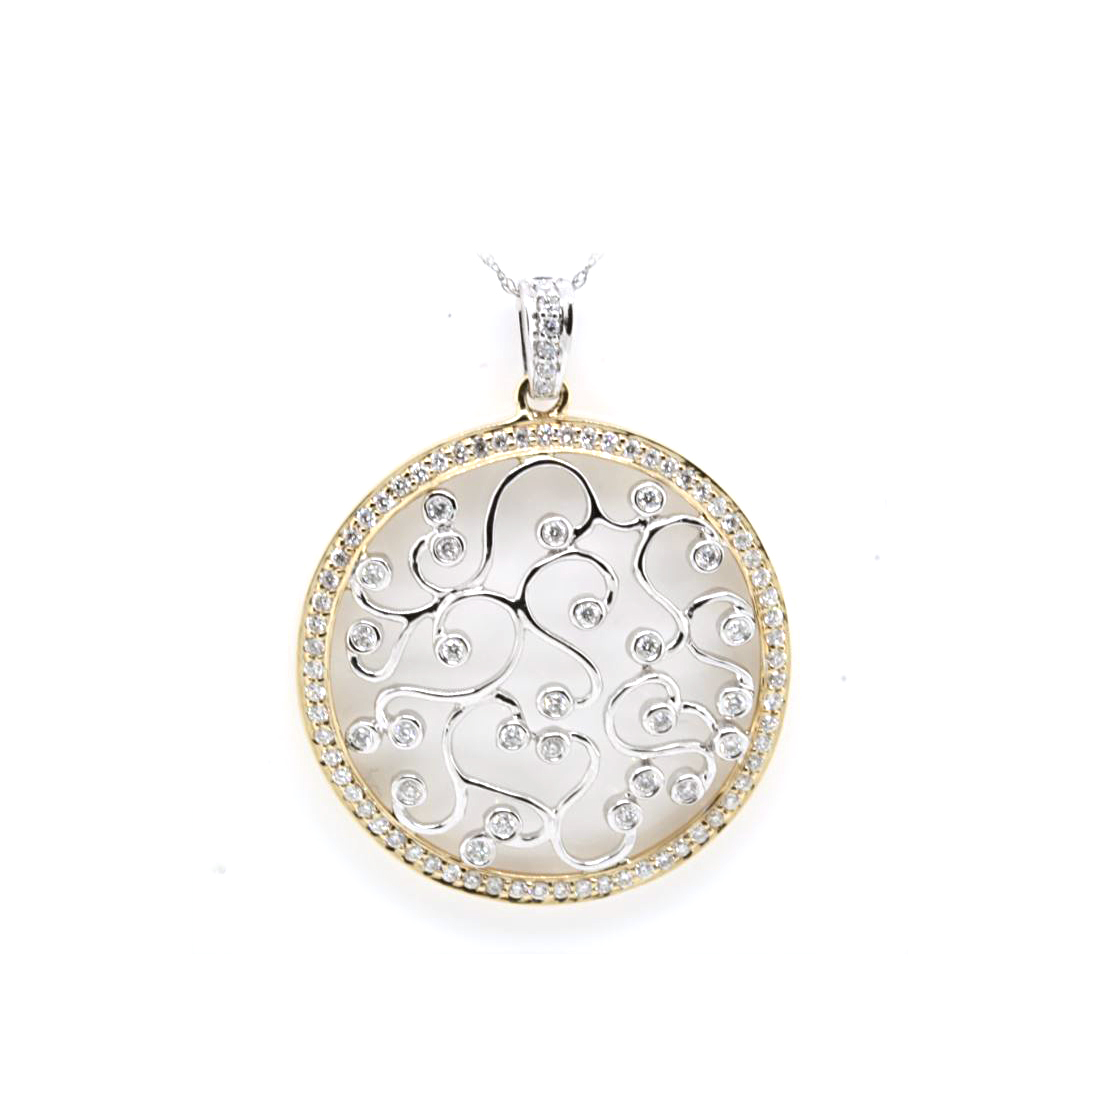 14 Karat White and Yellow Gold Diamond Circle Pendant Necklace